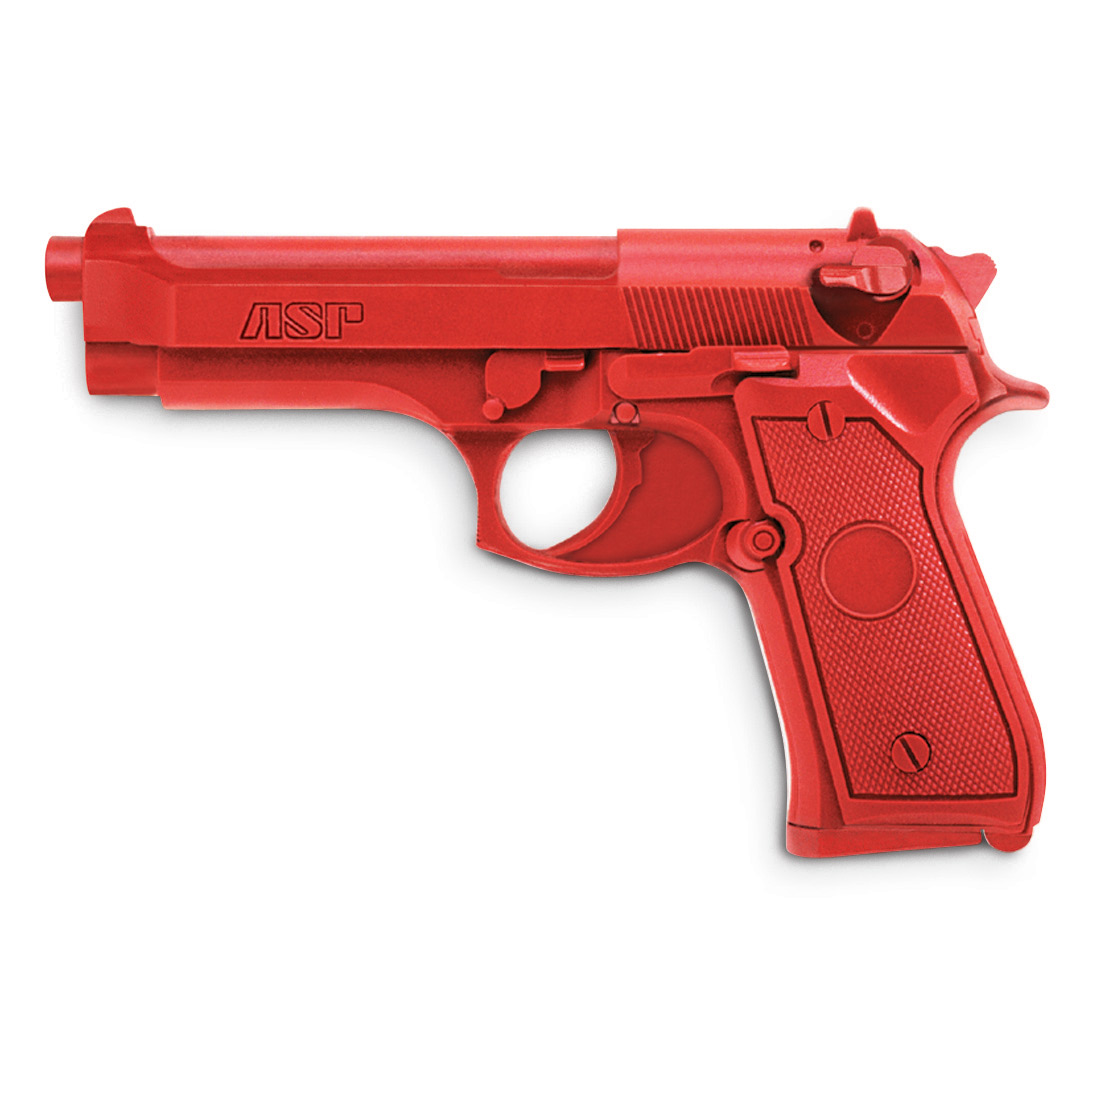 training gt weapons accessories asp red gun actual weight